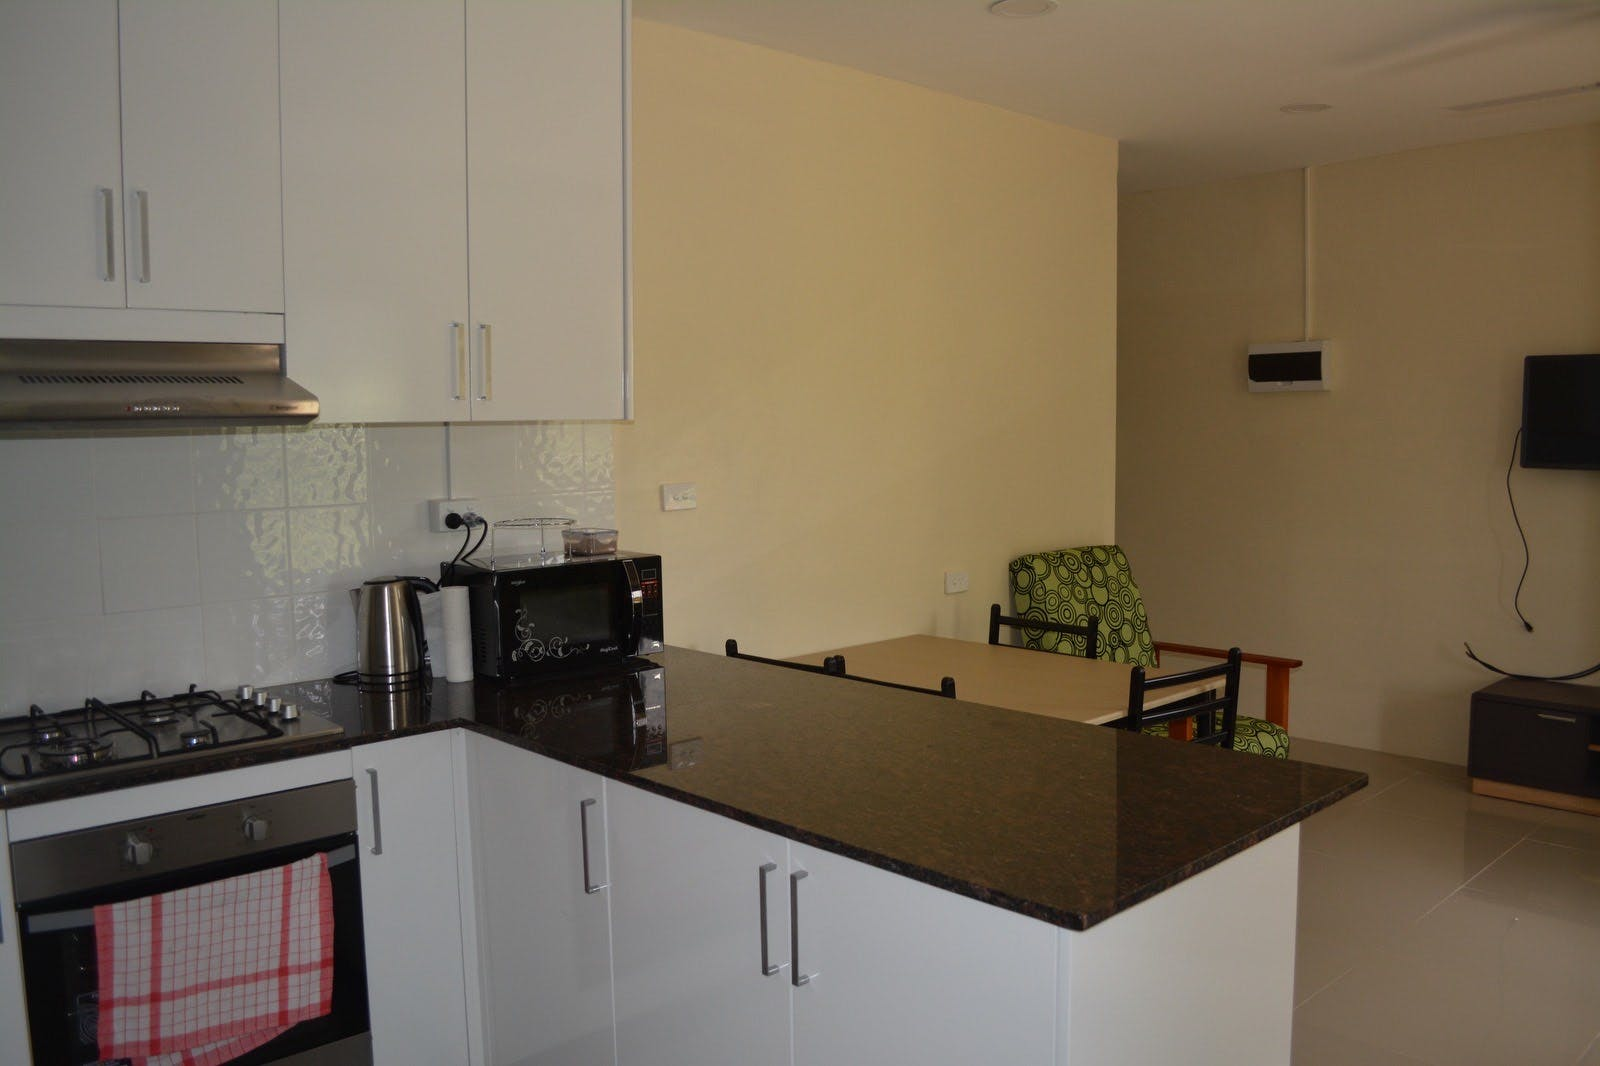 2 Bedroom Fully Furnished For Rent